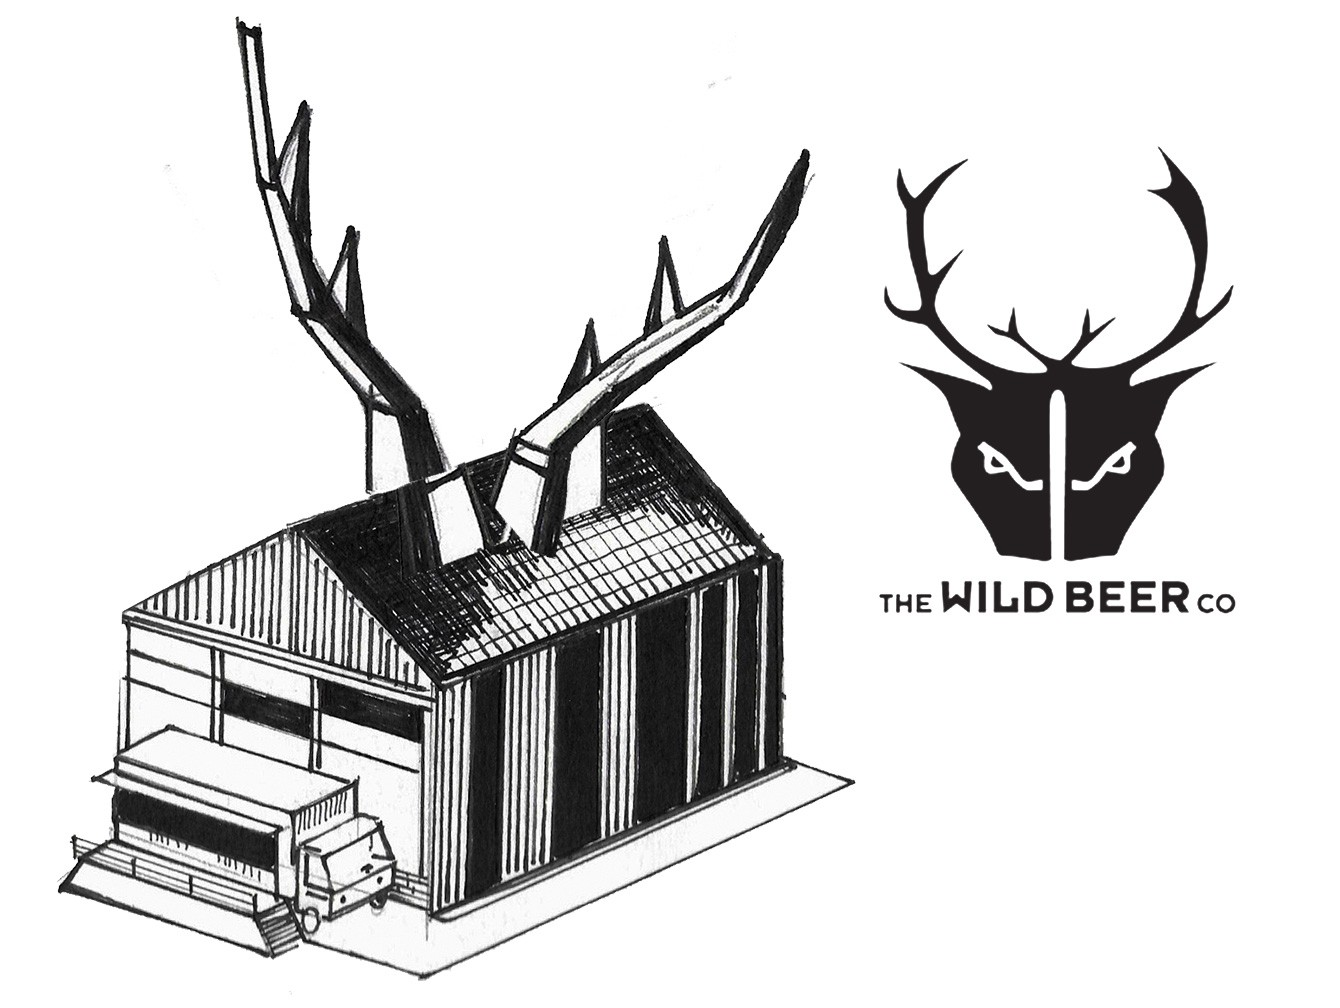 The Brewery The Wild Beer Co